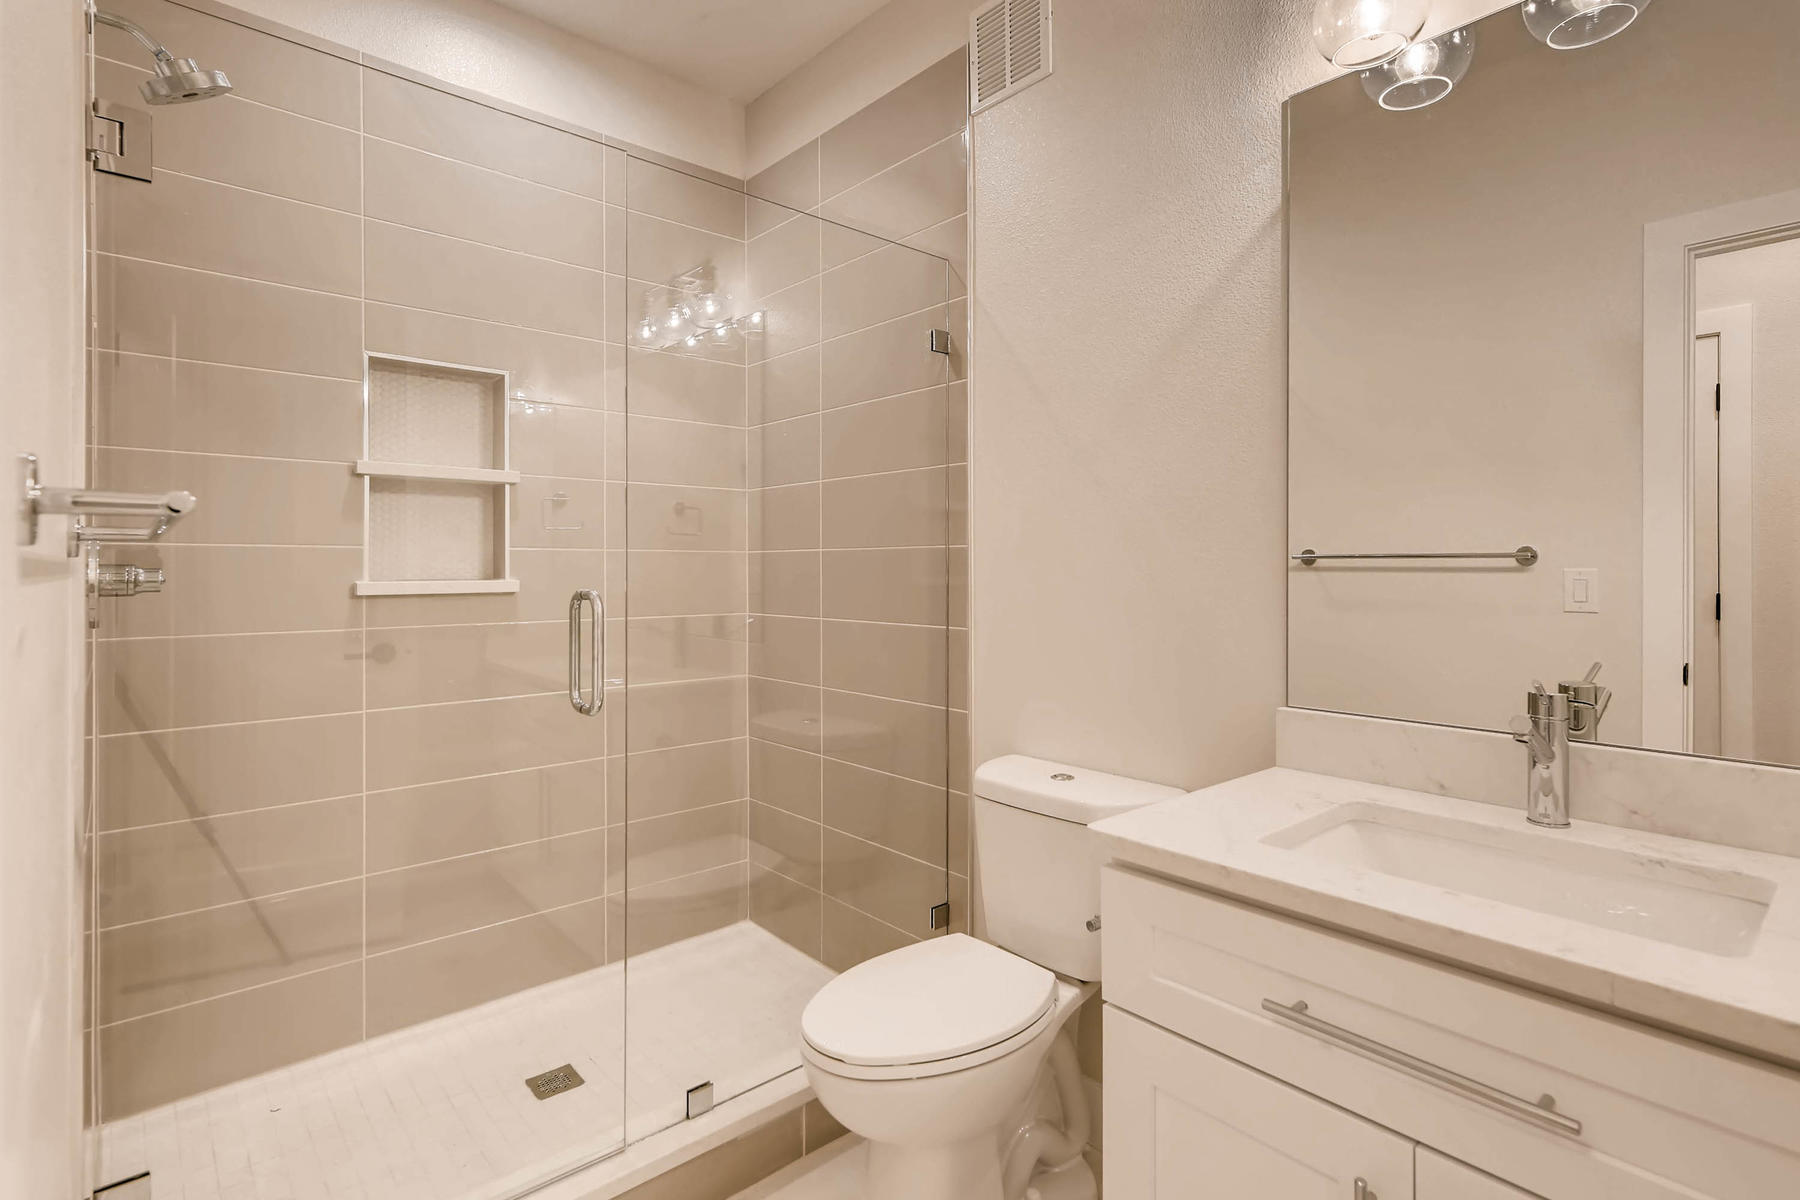 2753 S Acoma St Englewood CO-027-13-Lower Level Bathroom-MLS_Size.jpg